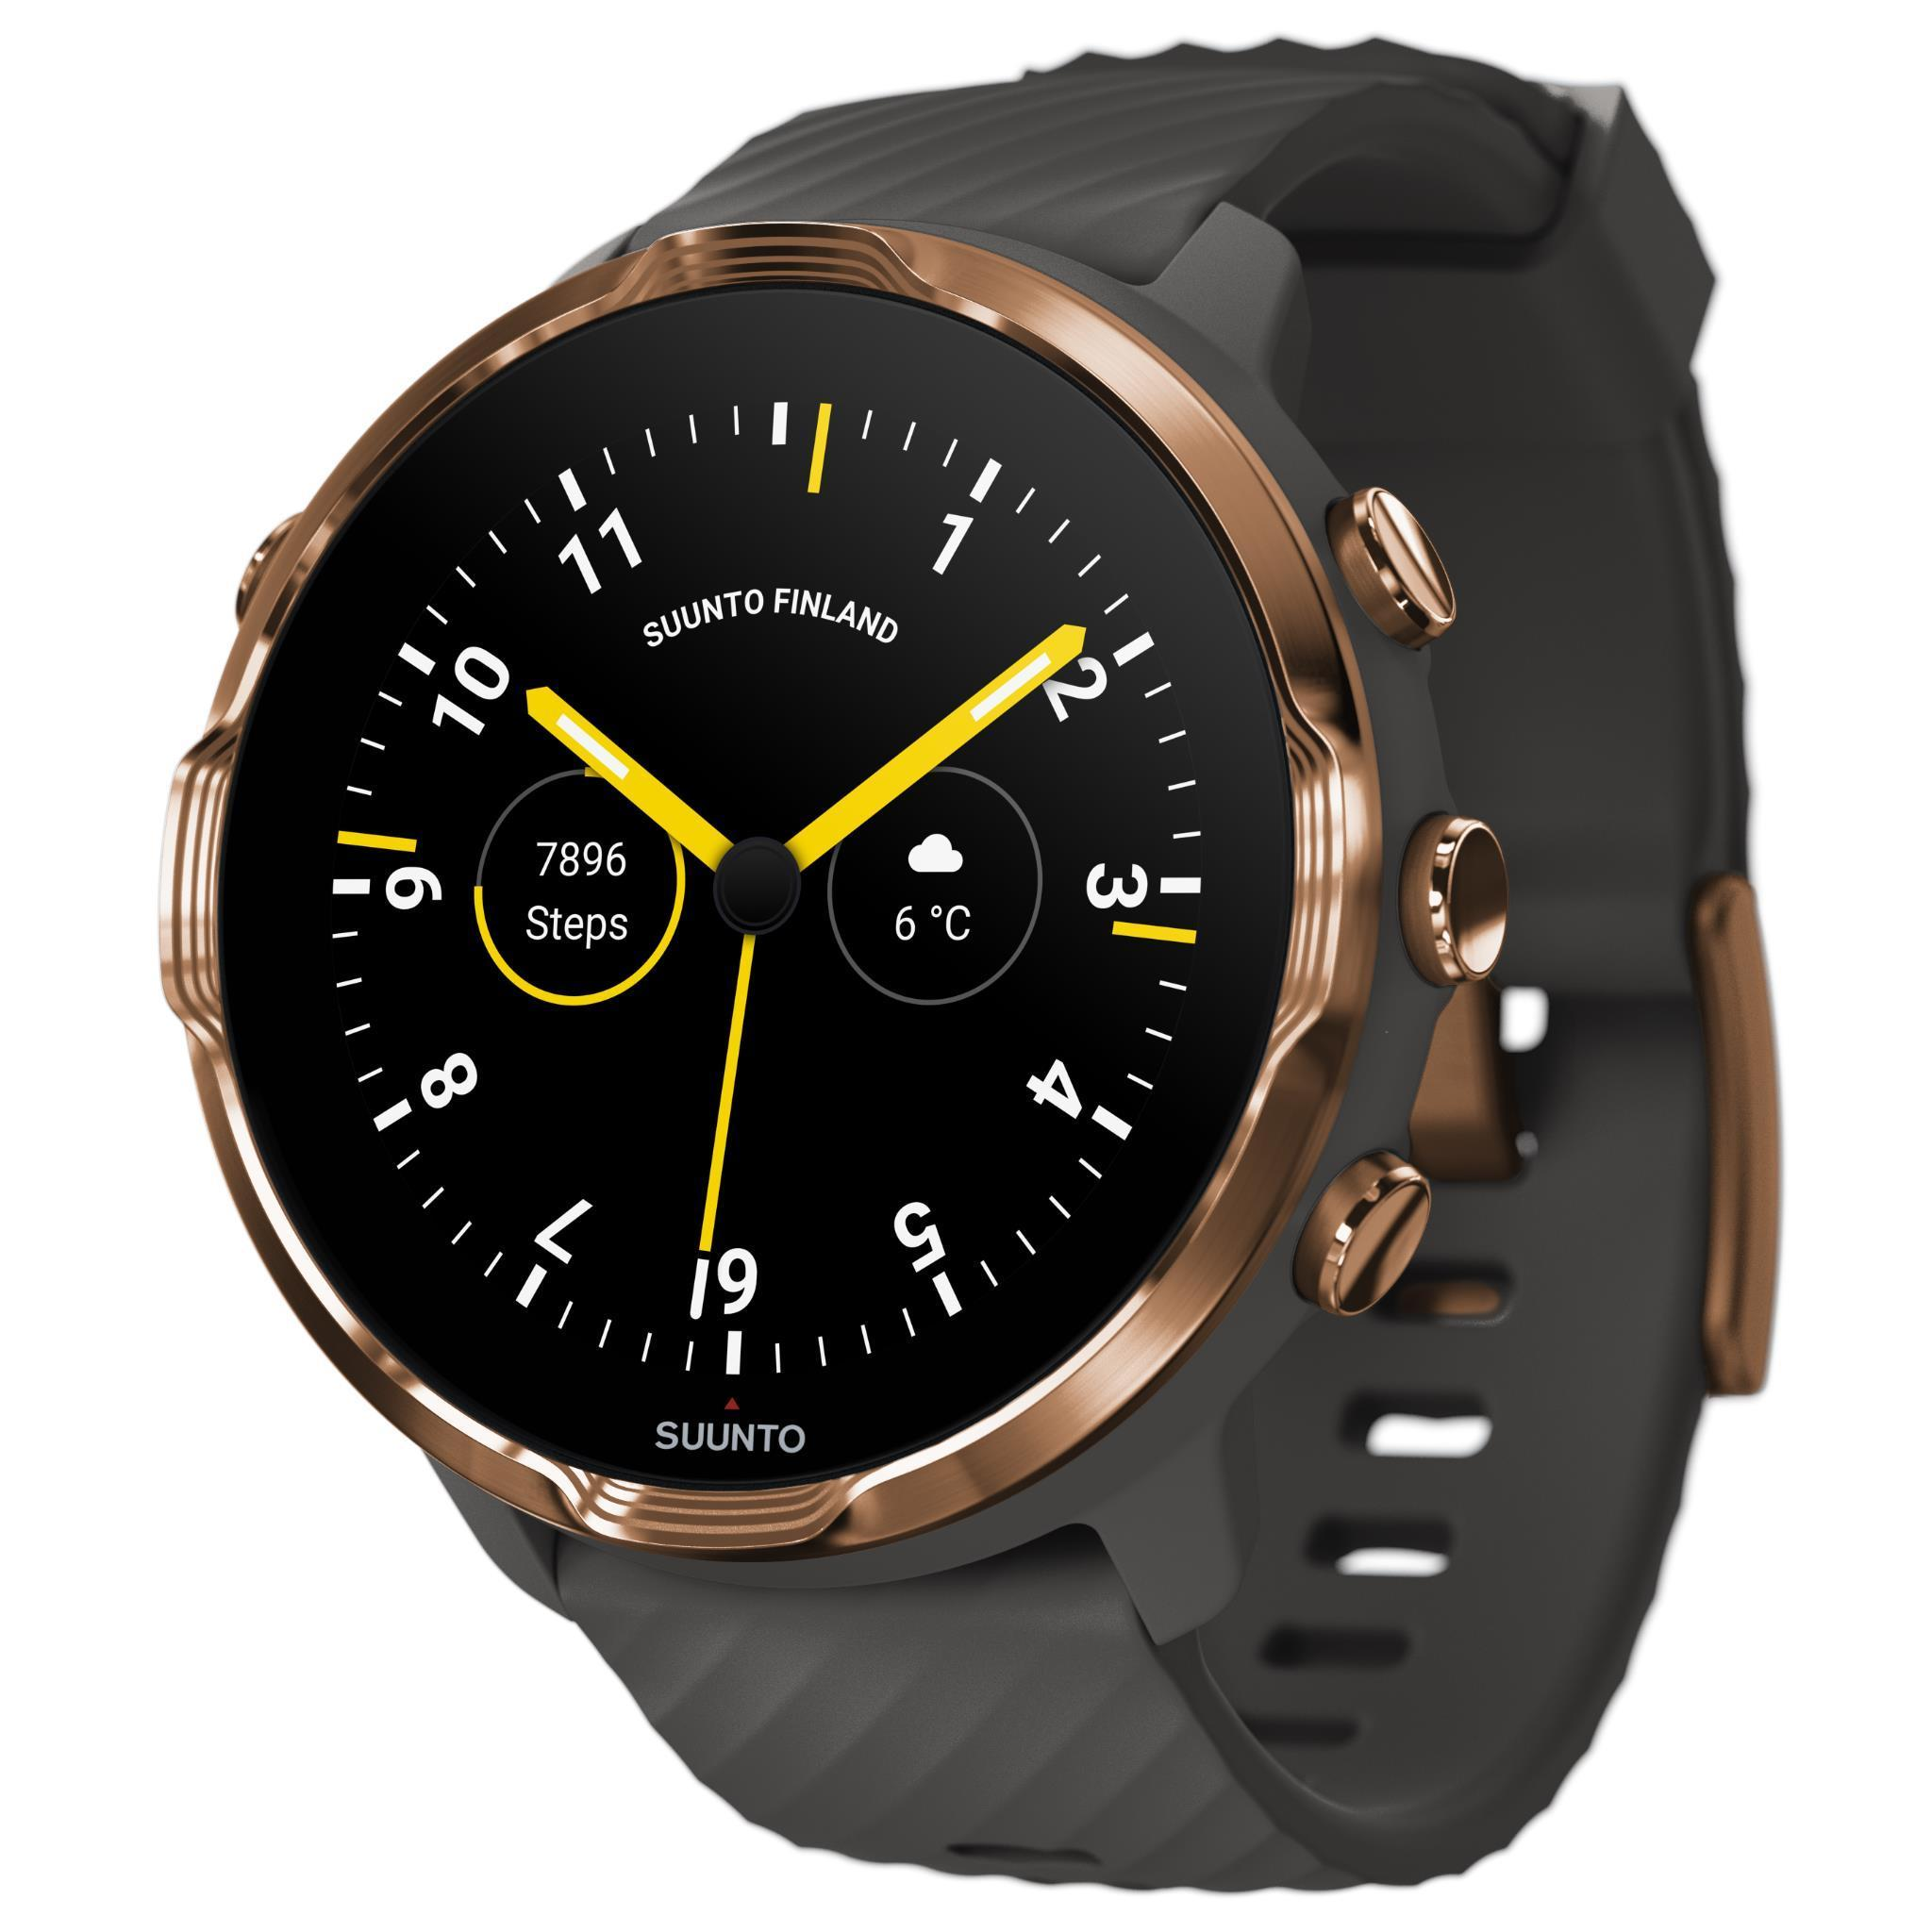 Suunto 7 GPS Sports Watch (Copper/Graphite)